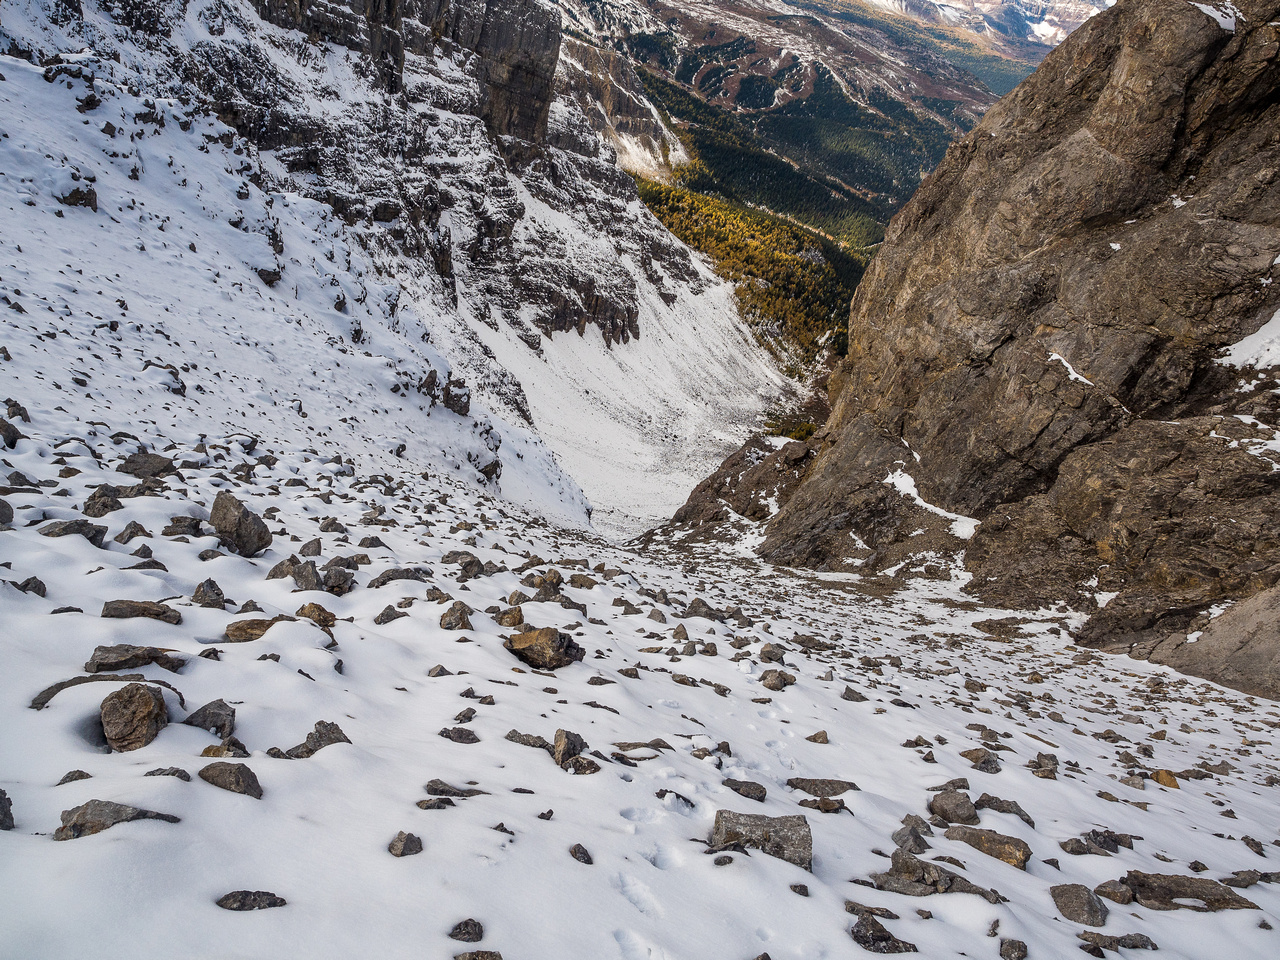 Looking down the scree gully leading to the ledge traverse.